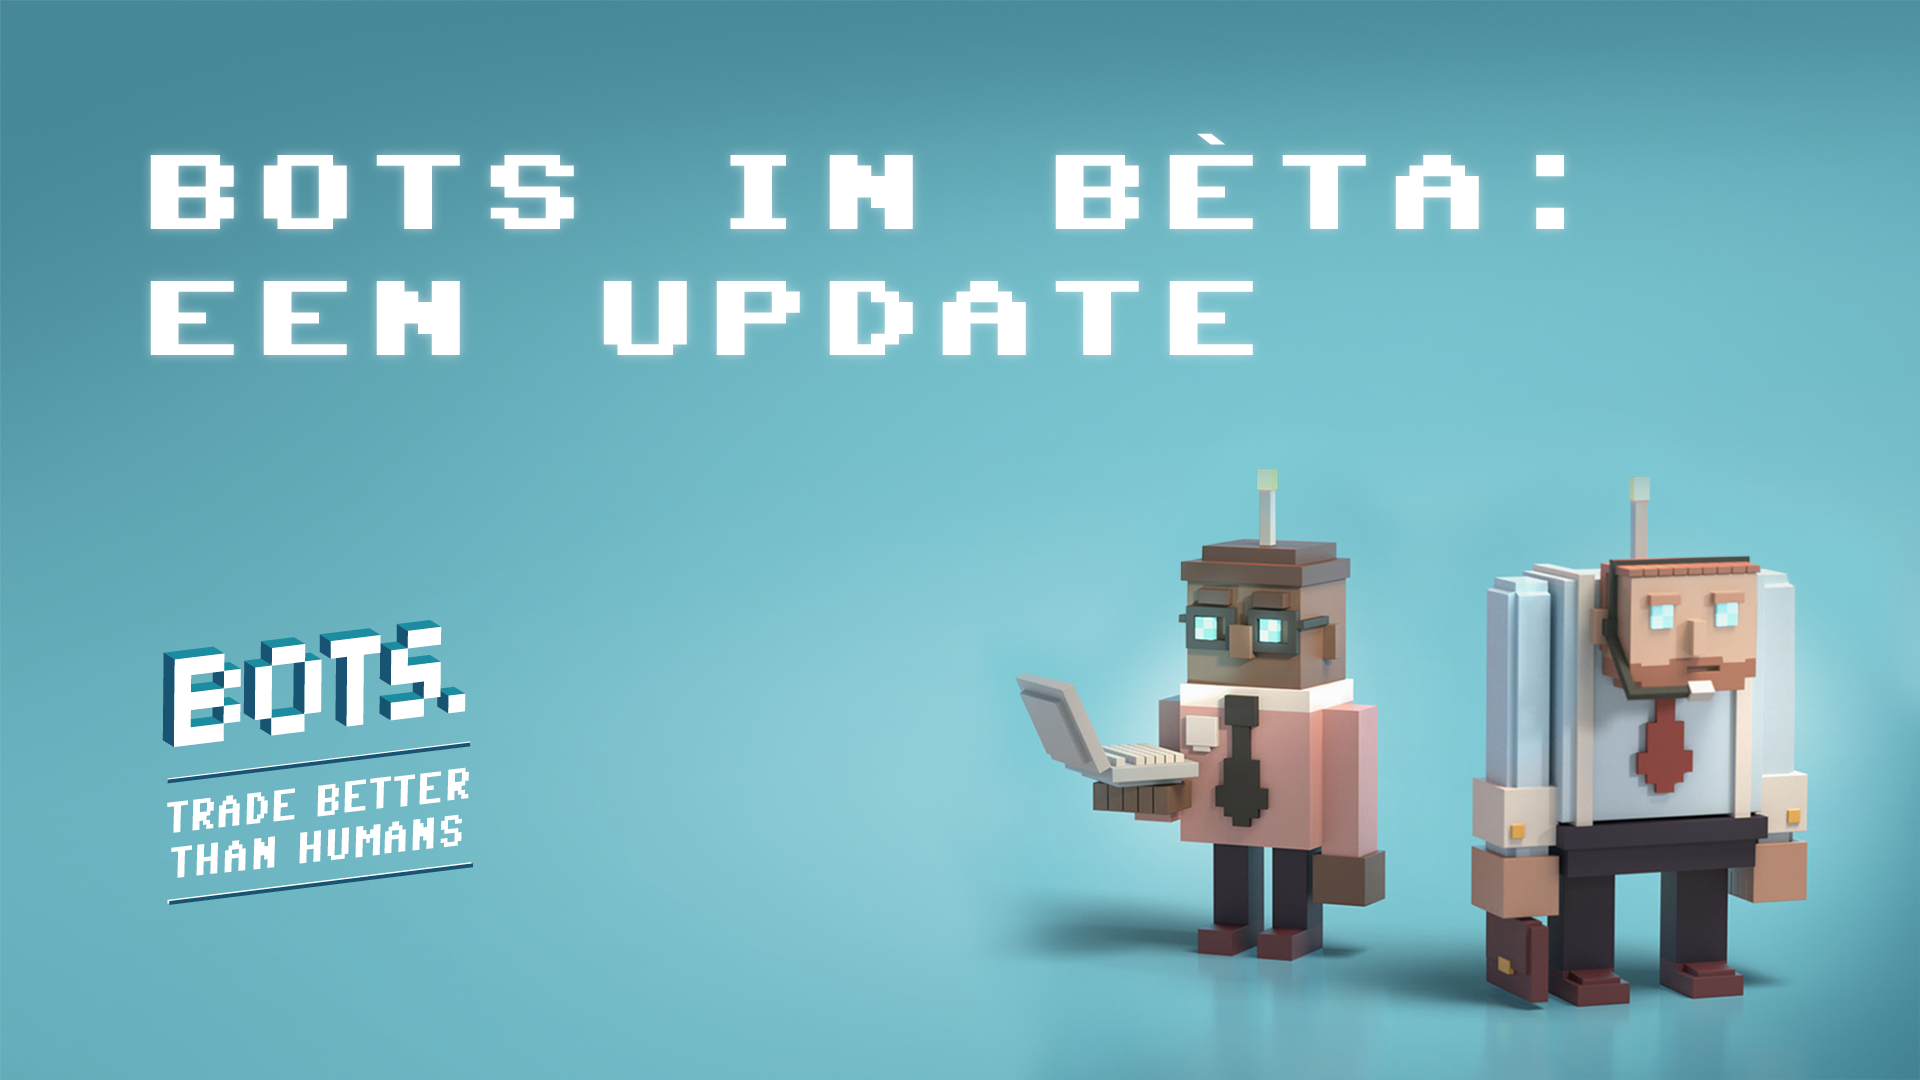 BOTS by RevenYOU: A brief update on the beta version